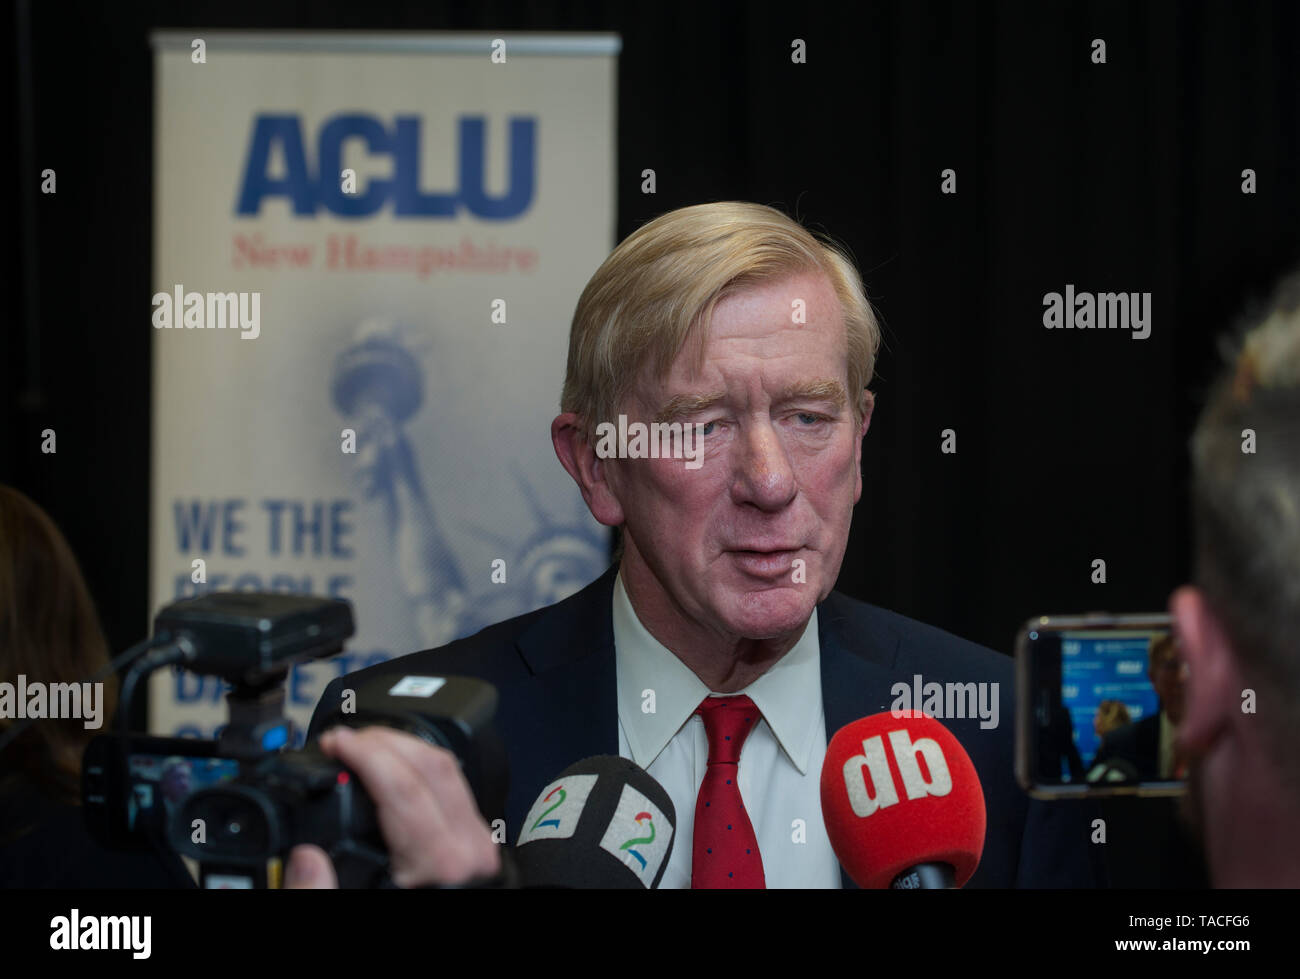 Concord, USA. 23rd May, 2019. Concord, NH, USA May 23 2019. Republican Presidential candidate and former Massachusetts Governor Bill Weld spoke to less than 100 people at the University of New Hampshire School of Law in Concord, NH. The event was organized by the New Hampshire American Civil Liberties Union (ACLU).  Photo shows Weld speaking with media after event. Credit: Chuck Nacke/Alamy Live News - Stock Image